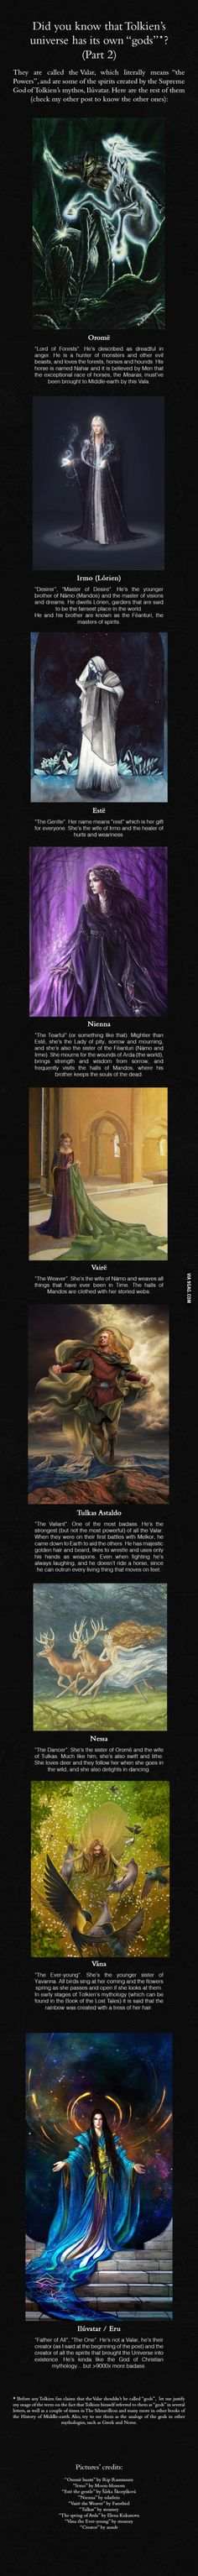 The Valar, part 2 - J.R.R. Tolkien's Mythology - and there's a part 2, with my favorite. :) Yet again, yay art!